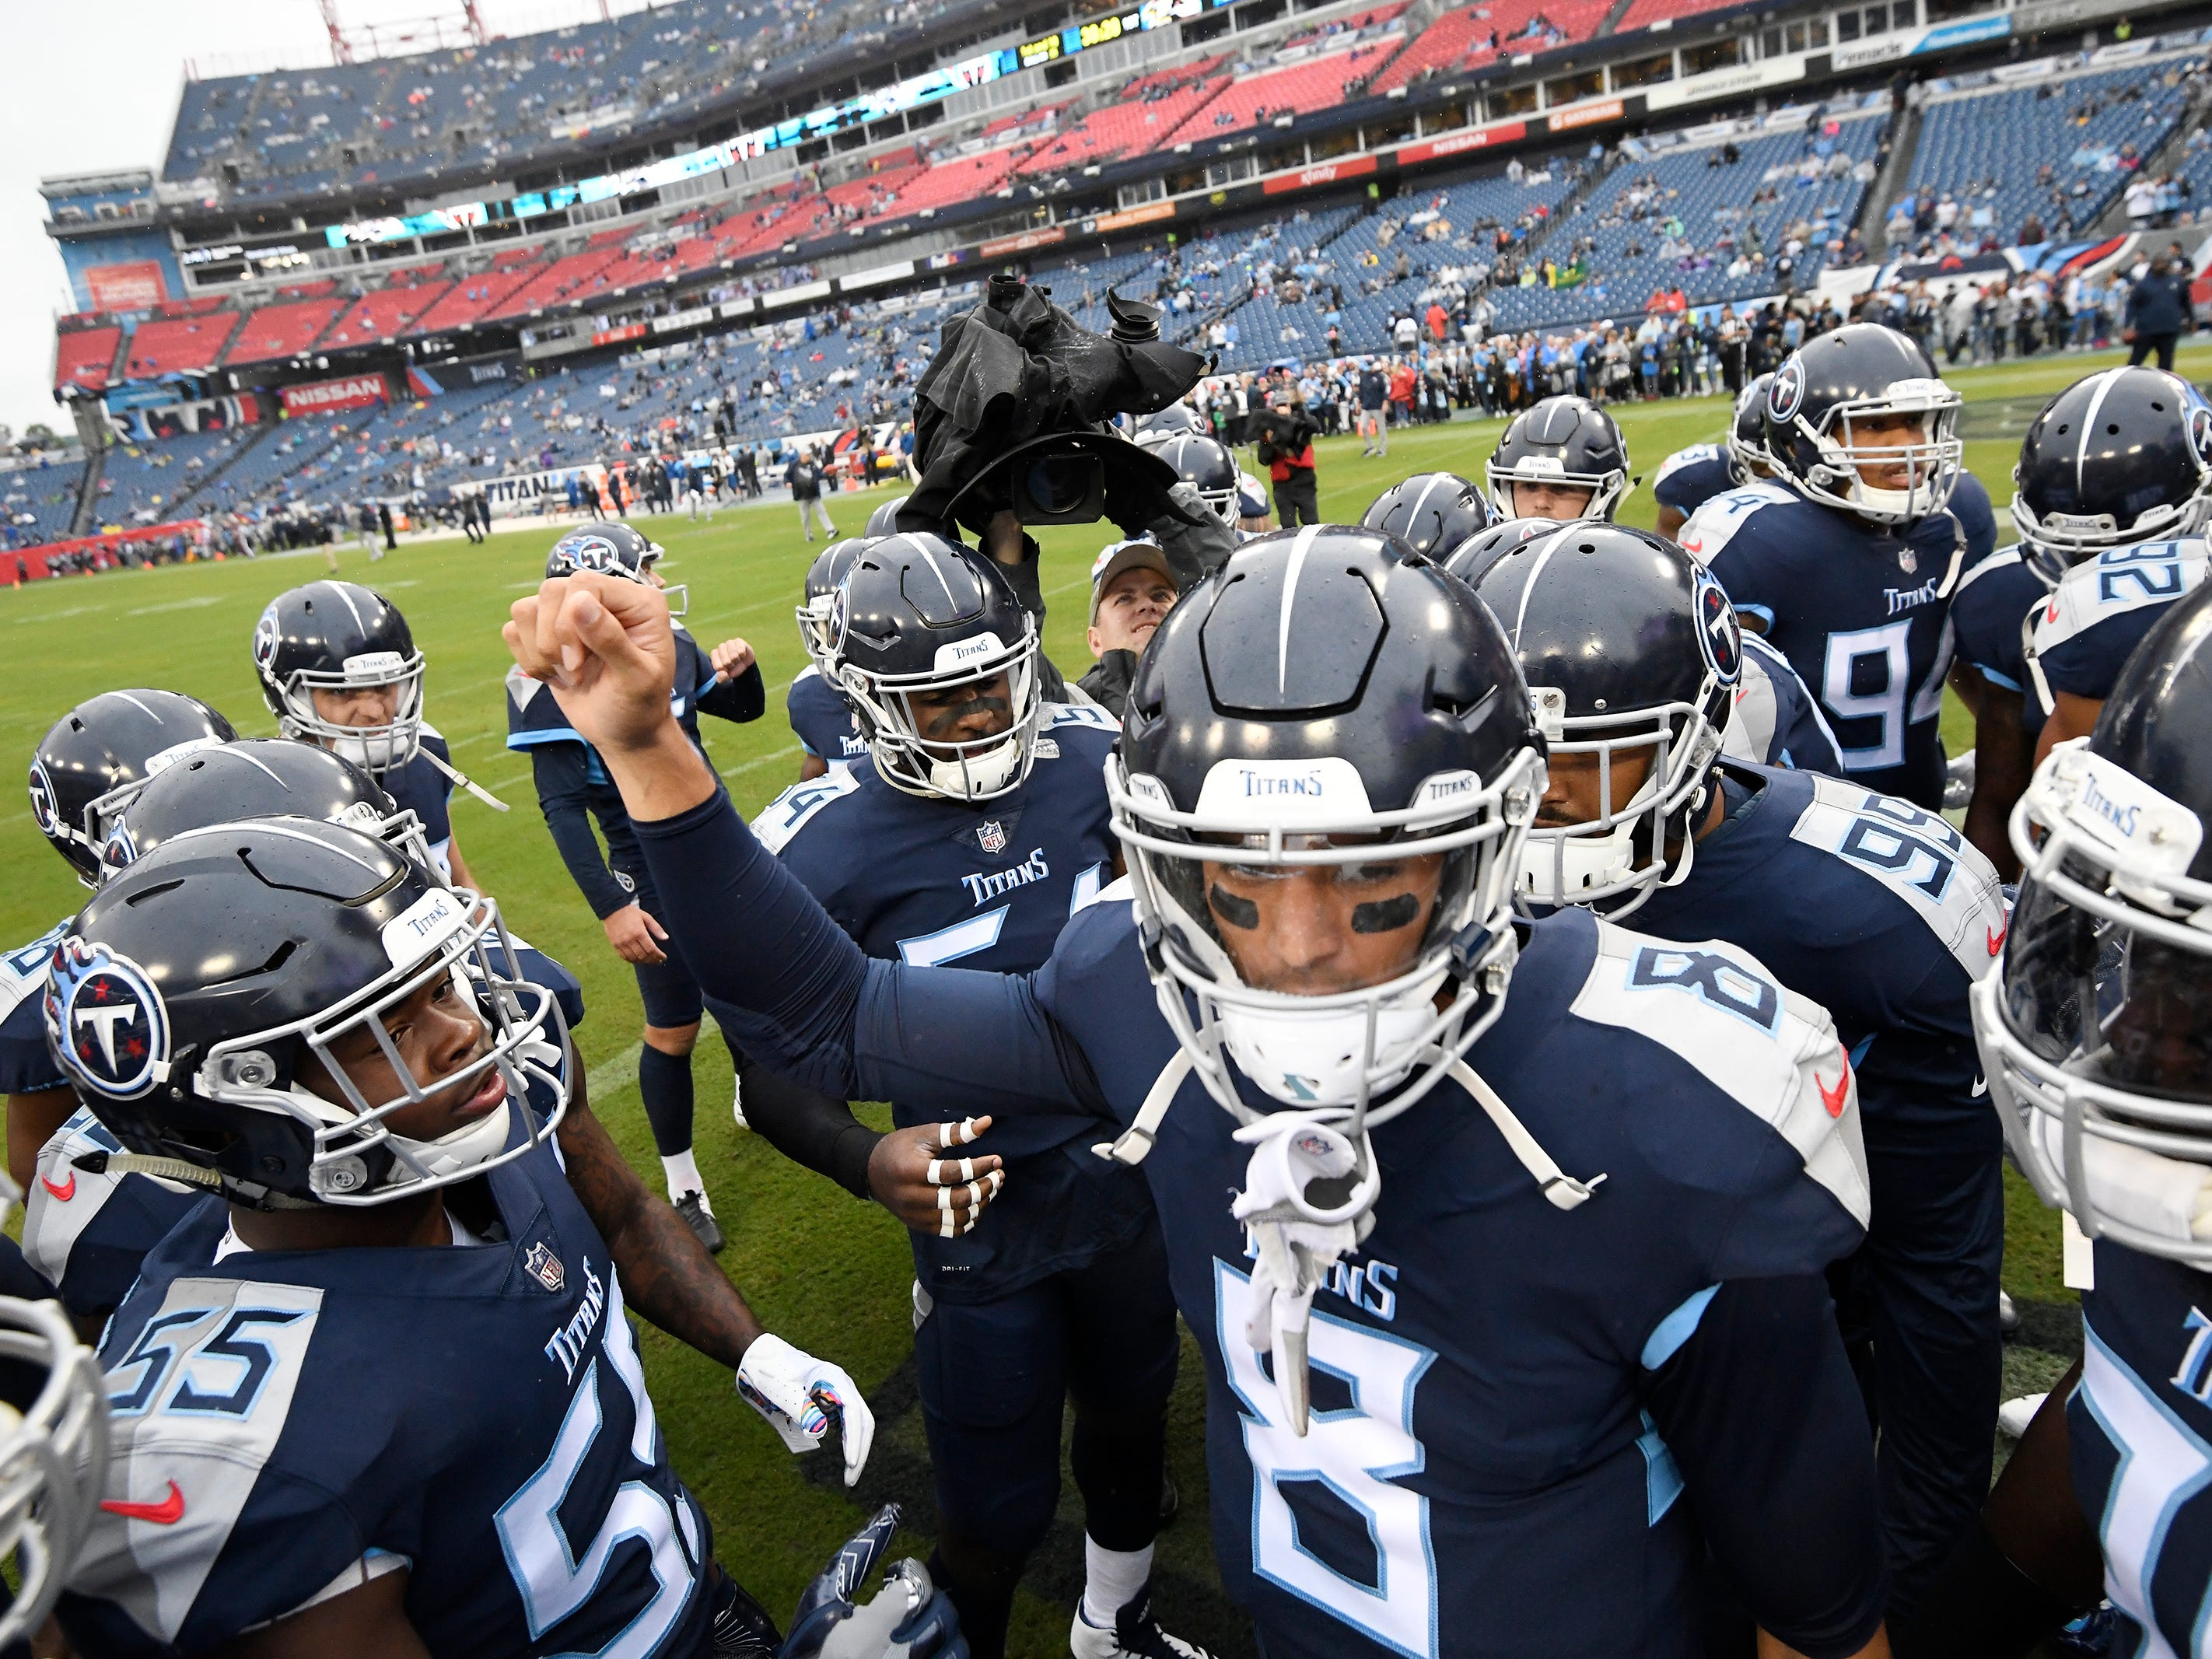 Titans quarterback Marcus Mariota (8) leads the huddle before the game against the Ravens at Nissan Stadium Sunday, Oct. 14, 2018, in Nashville, Tenn.